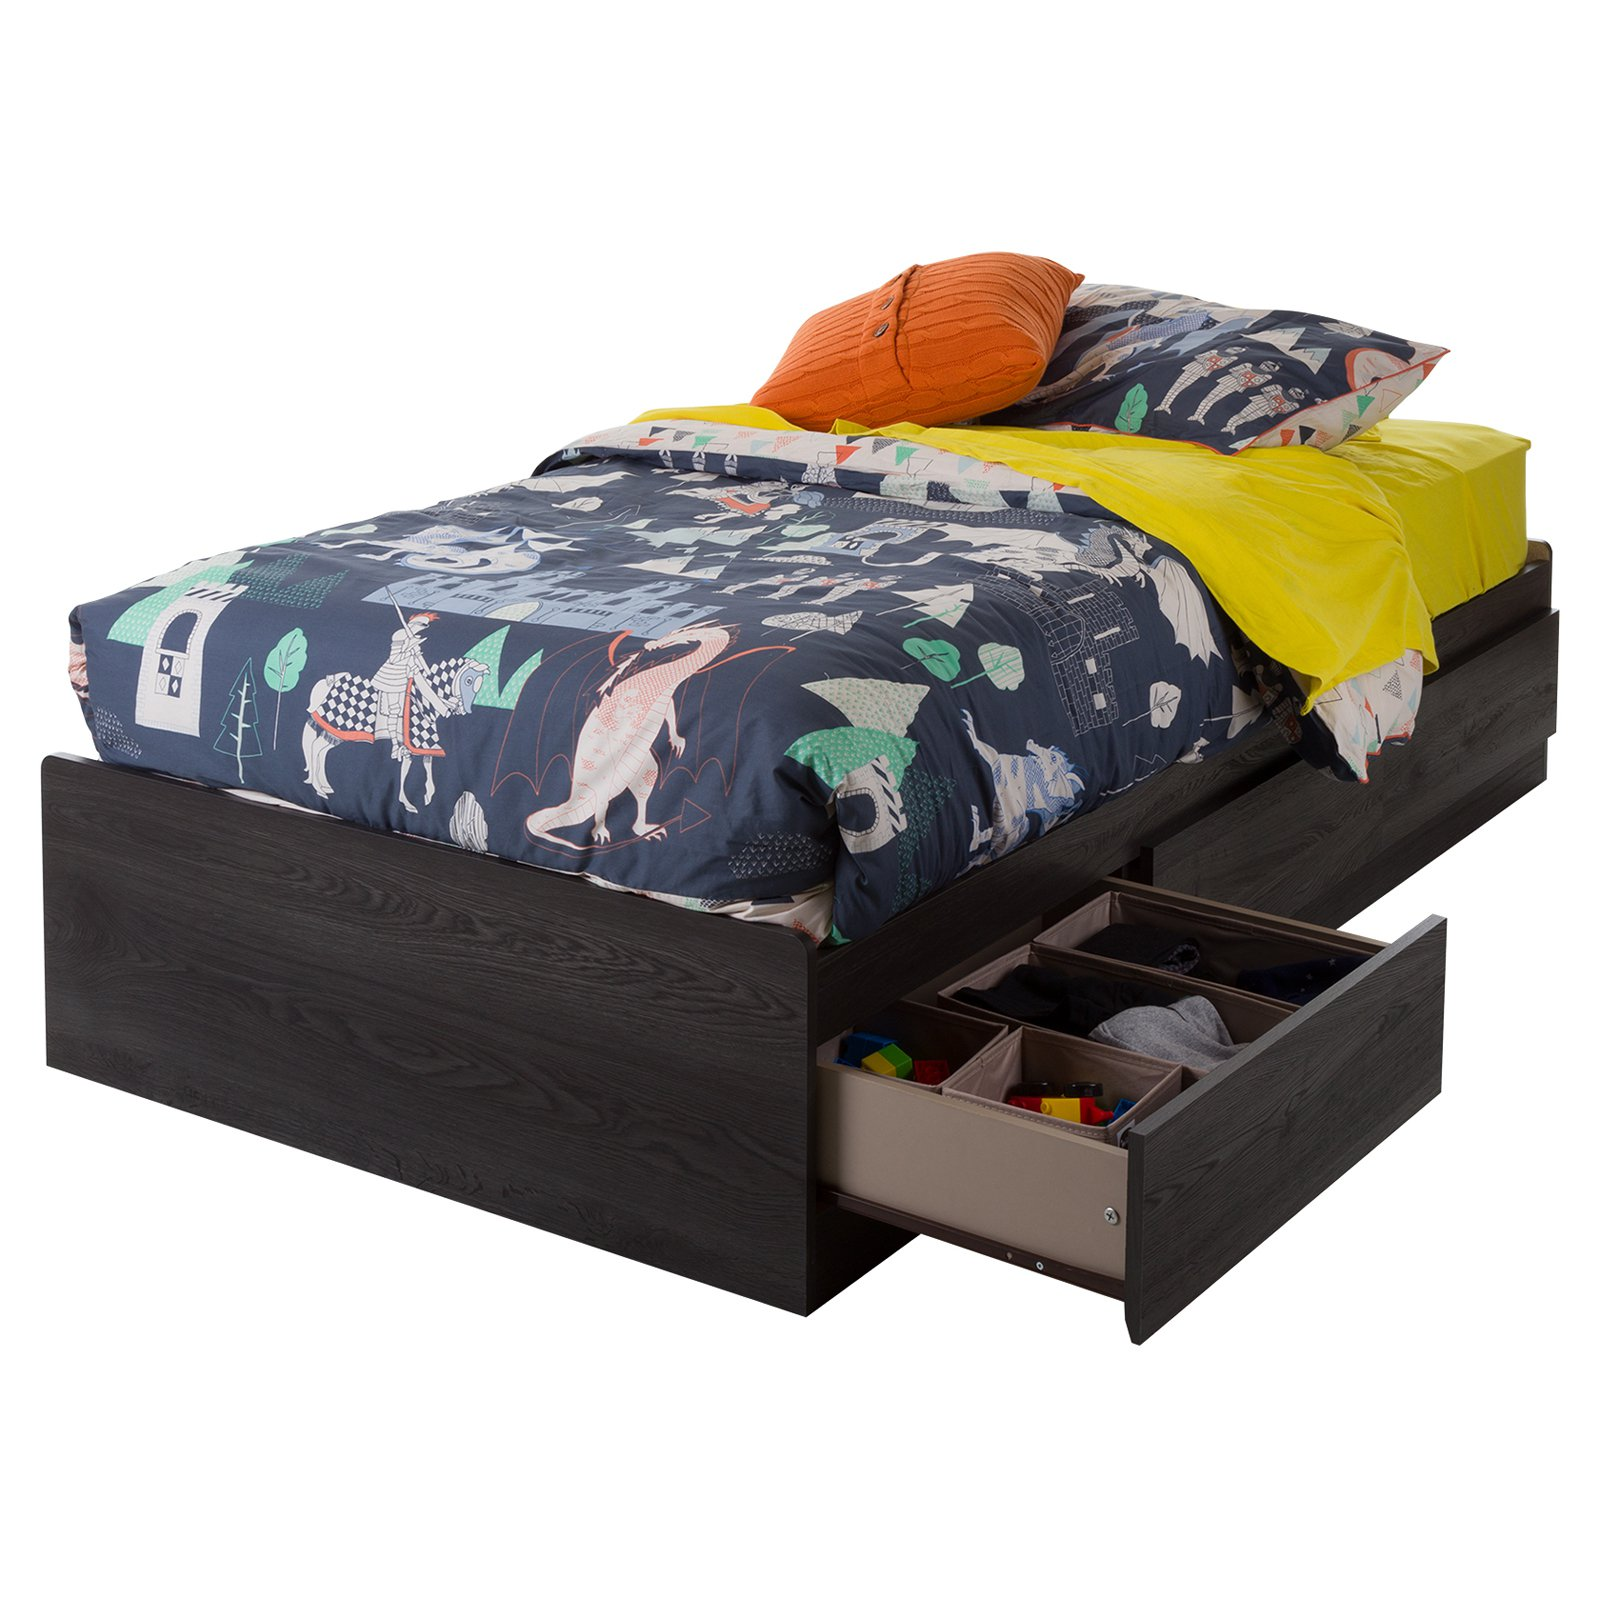 South Shore Basics Twin Storage Bed with 3 Drawers, Multiple Finishes by South Shore